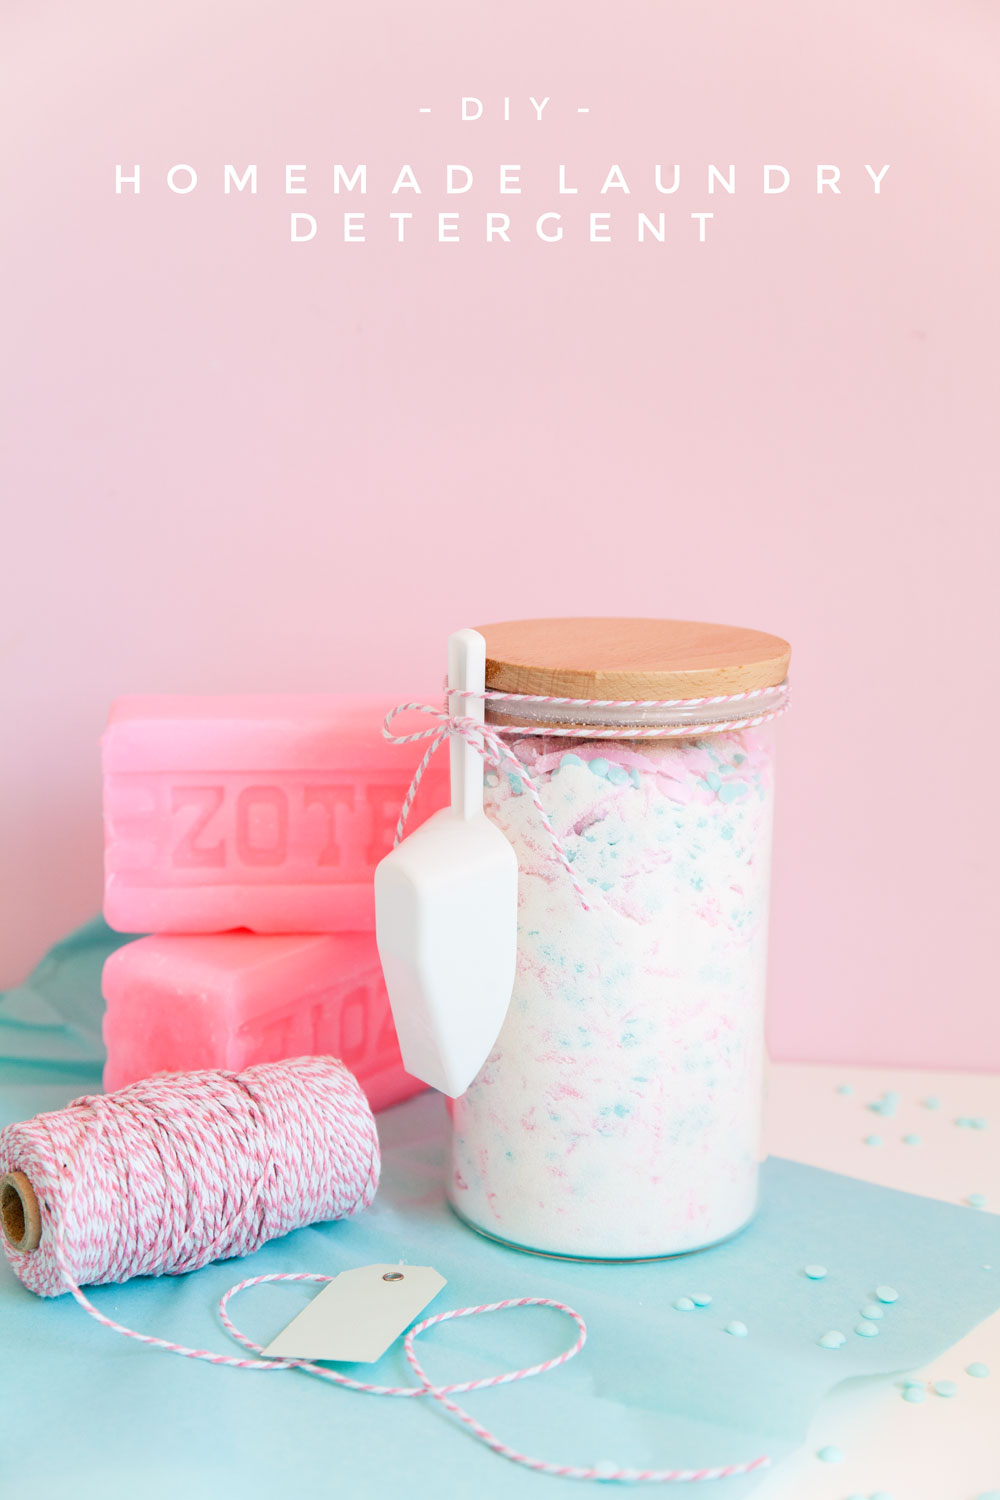 DIY-homemade-laundry-detergent-recipe